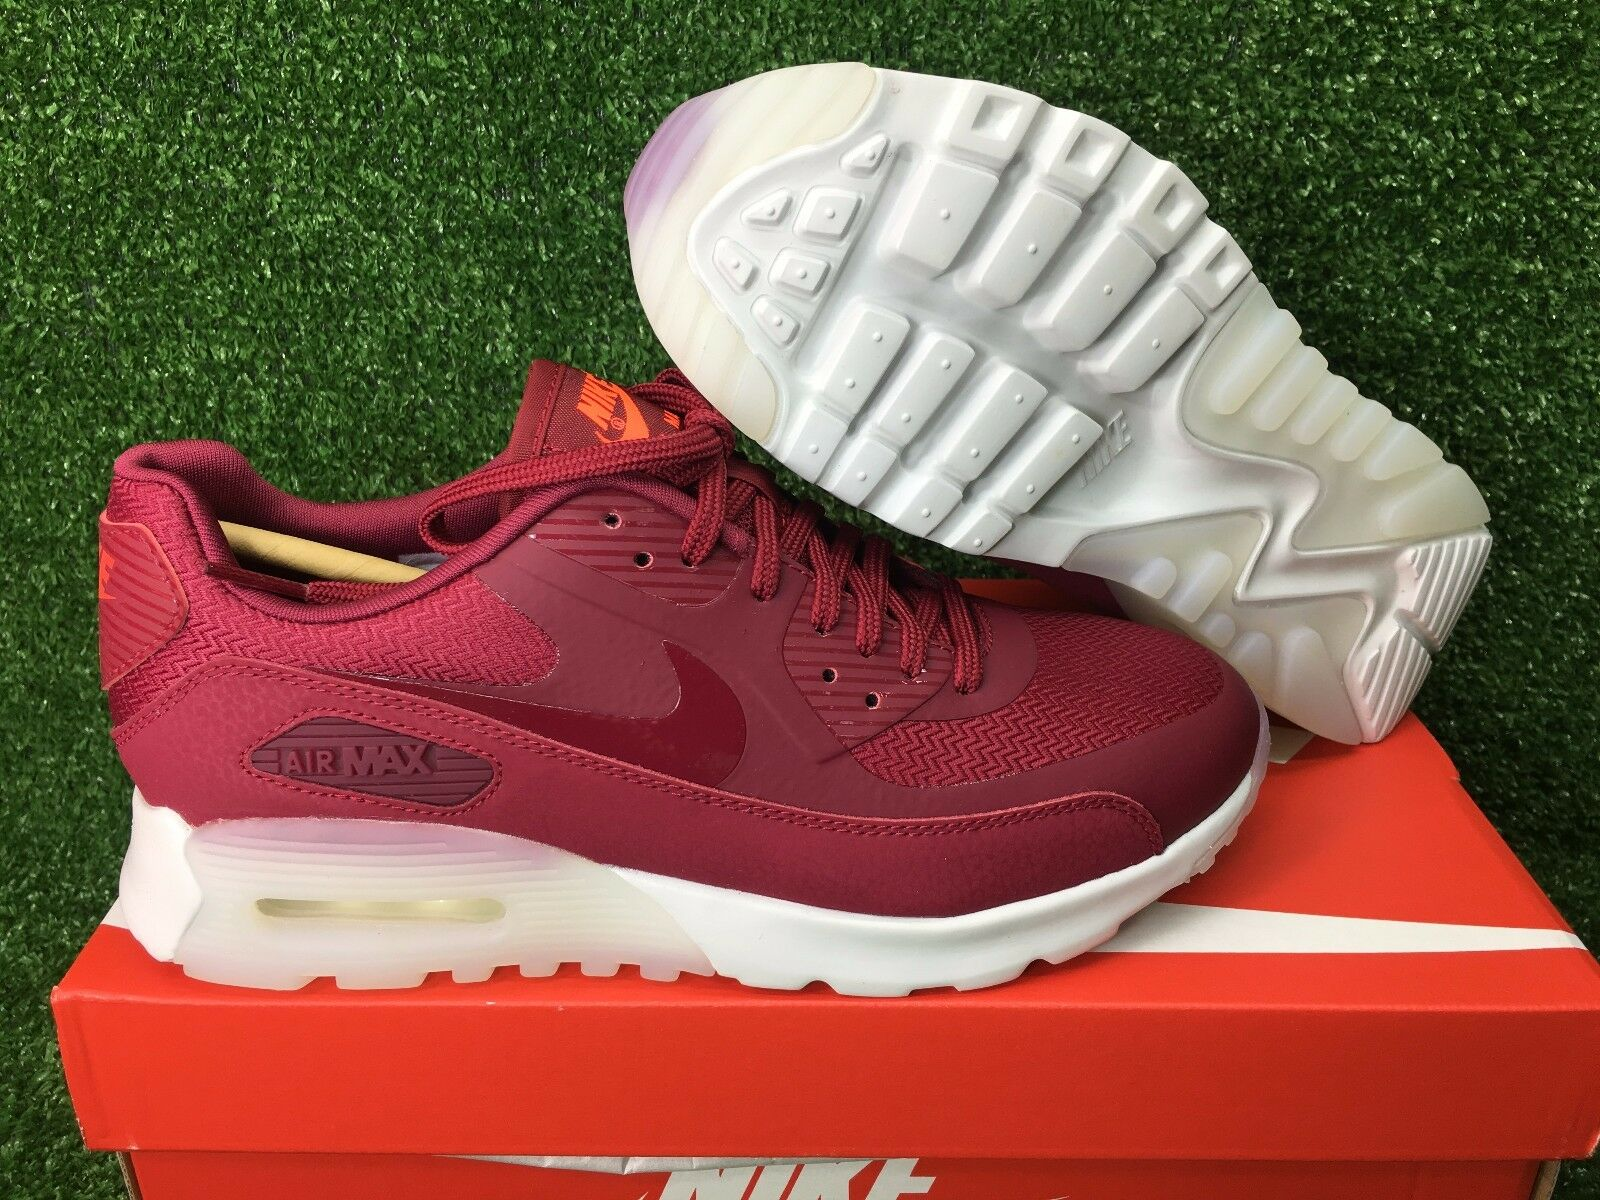 NEW WMNS NIKE AIR MAX 90 ULTRA WOMEN'S RUNNING SHOES NOBLE RED WHITE 845110-600